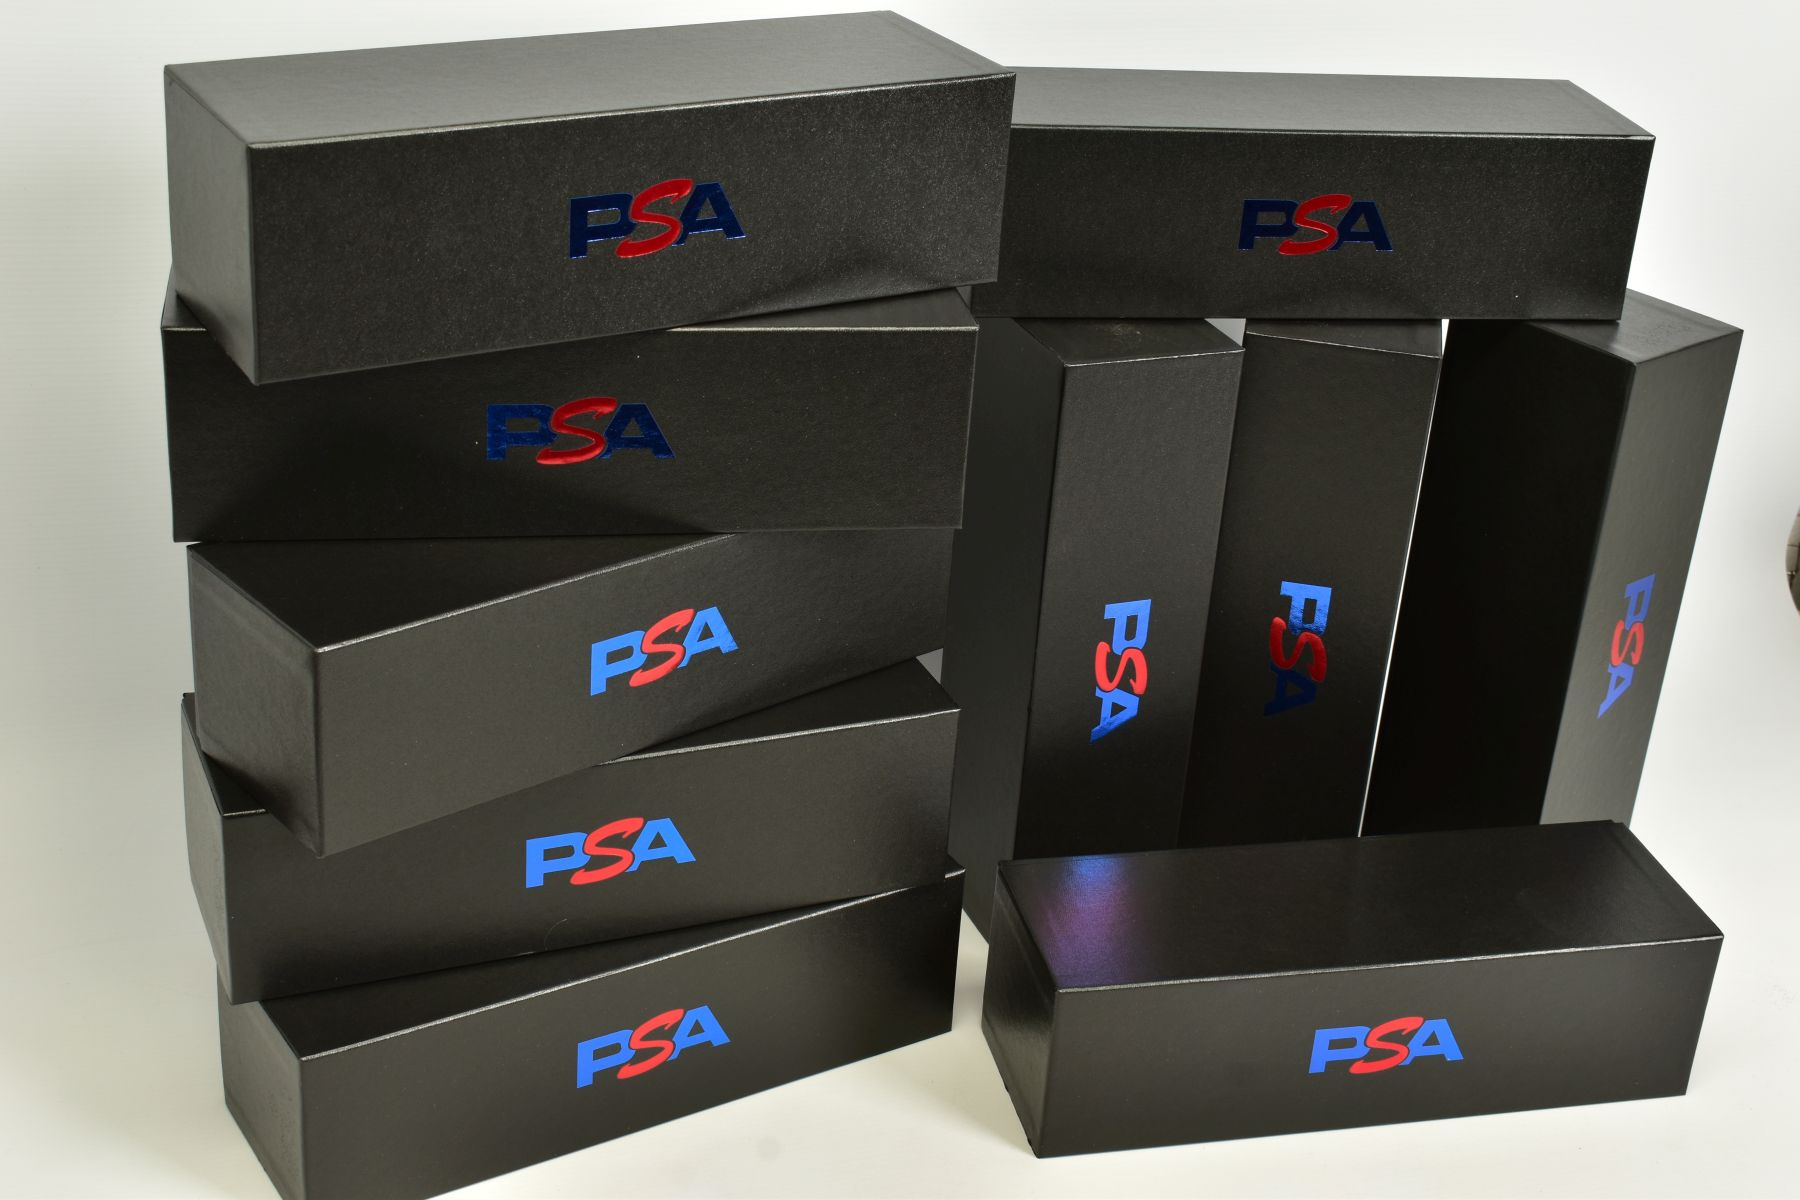 A QUANTITY OF EMPTY PSA CARDBOARD CARD STORAGE BOXES, lidded cardboard boxes finished in black - Image 2 of 3